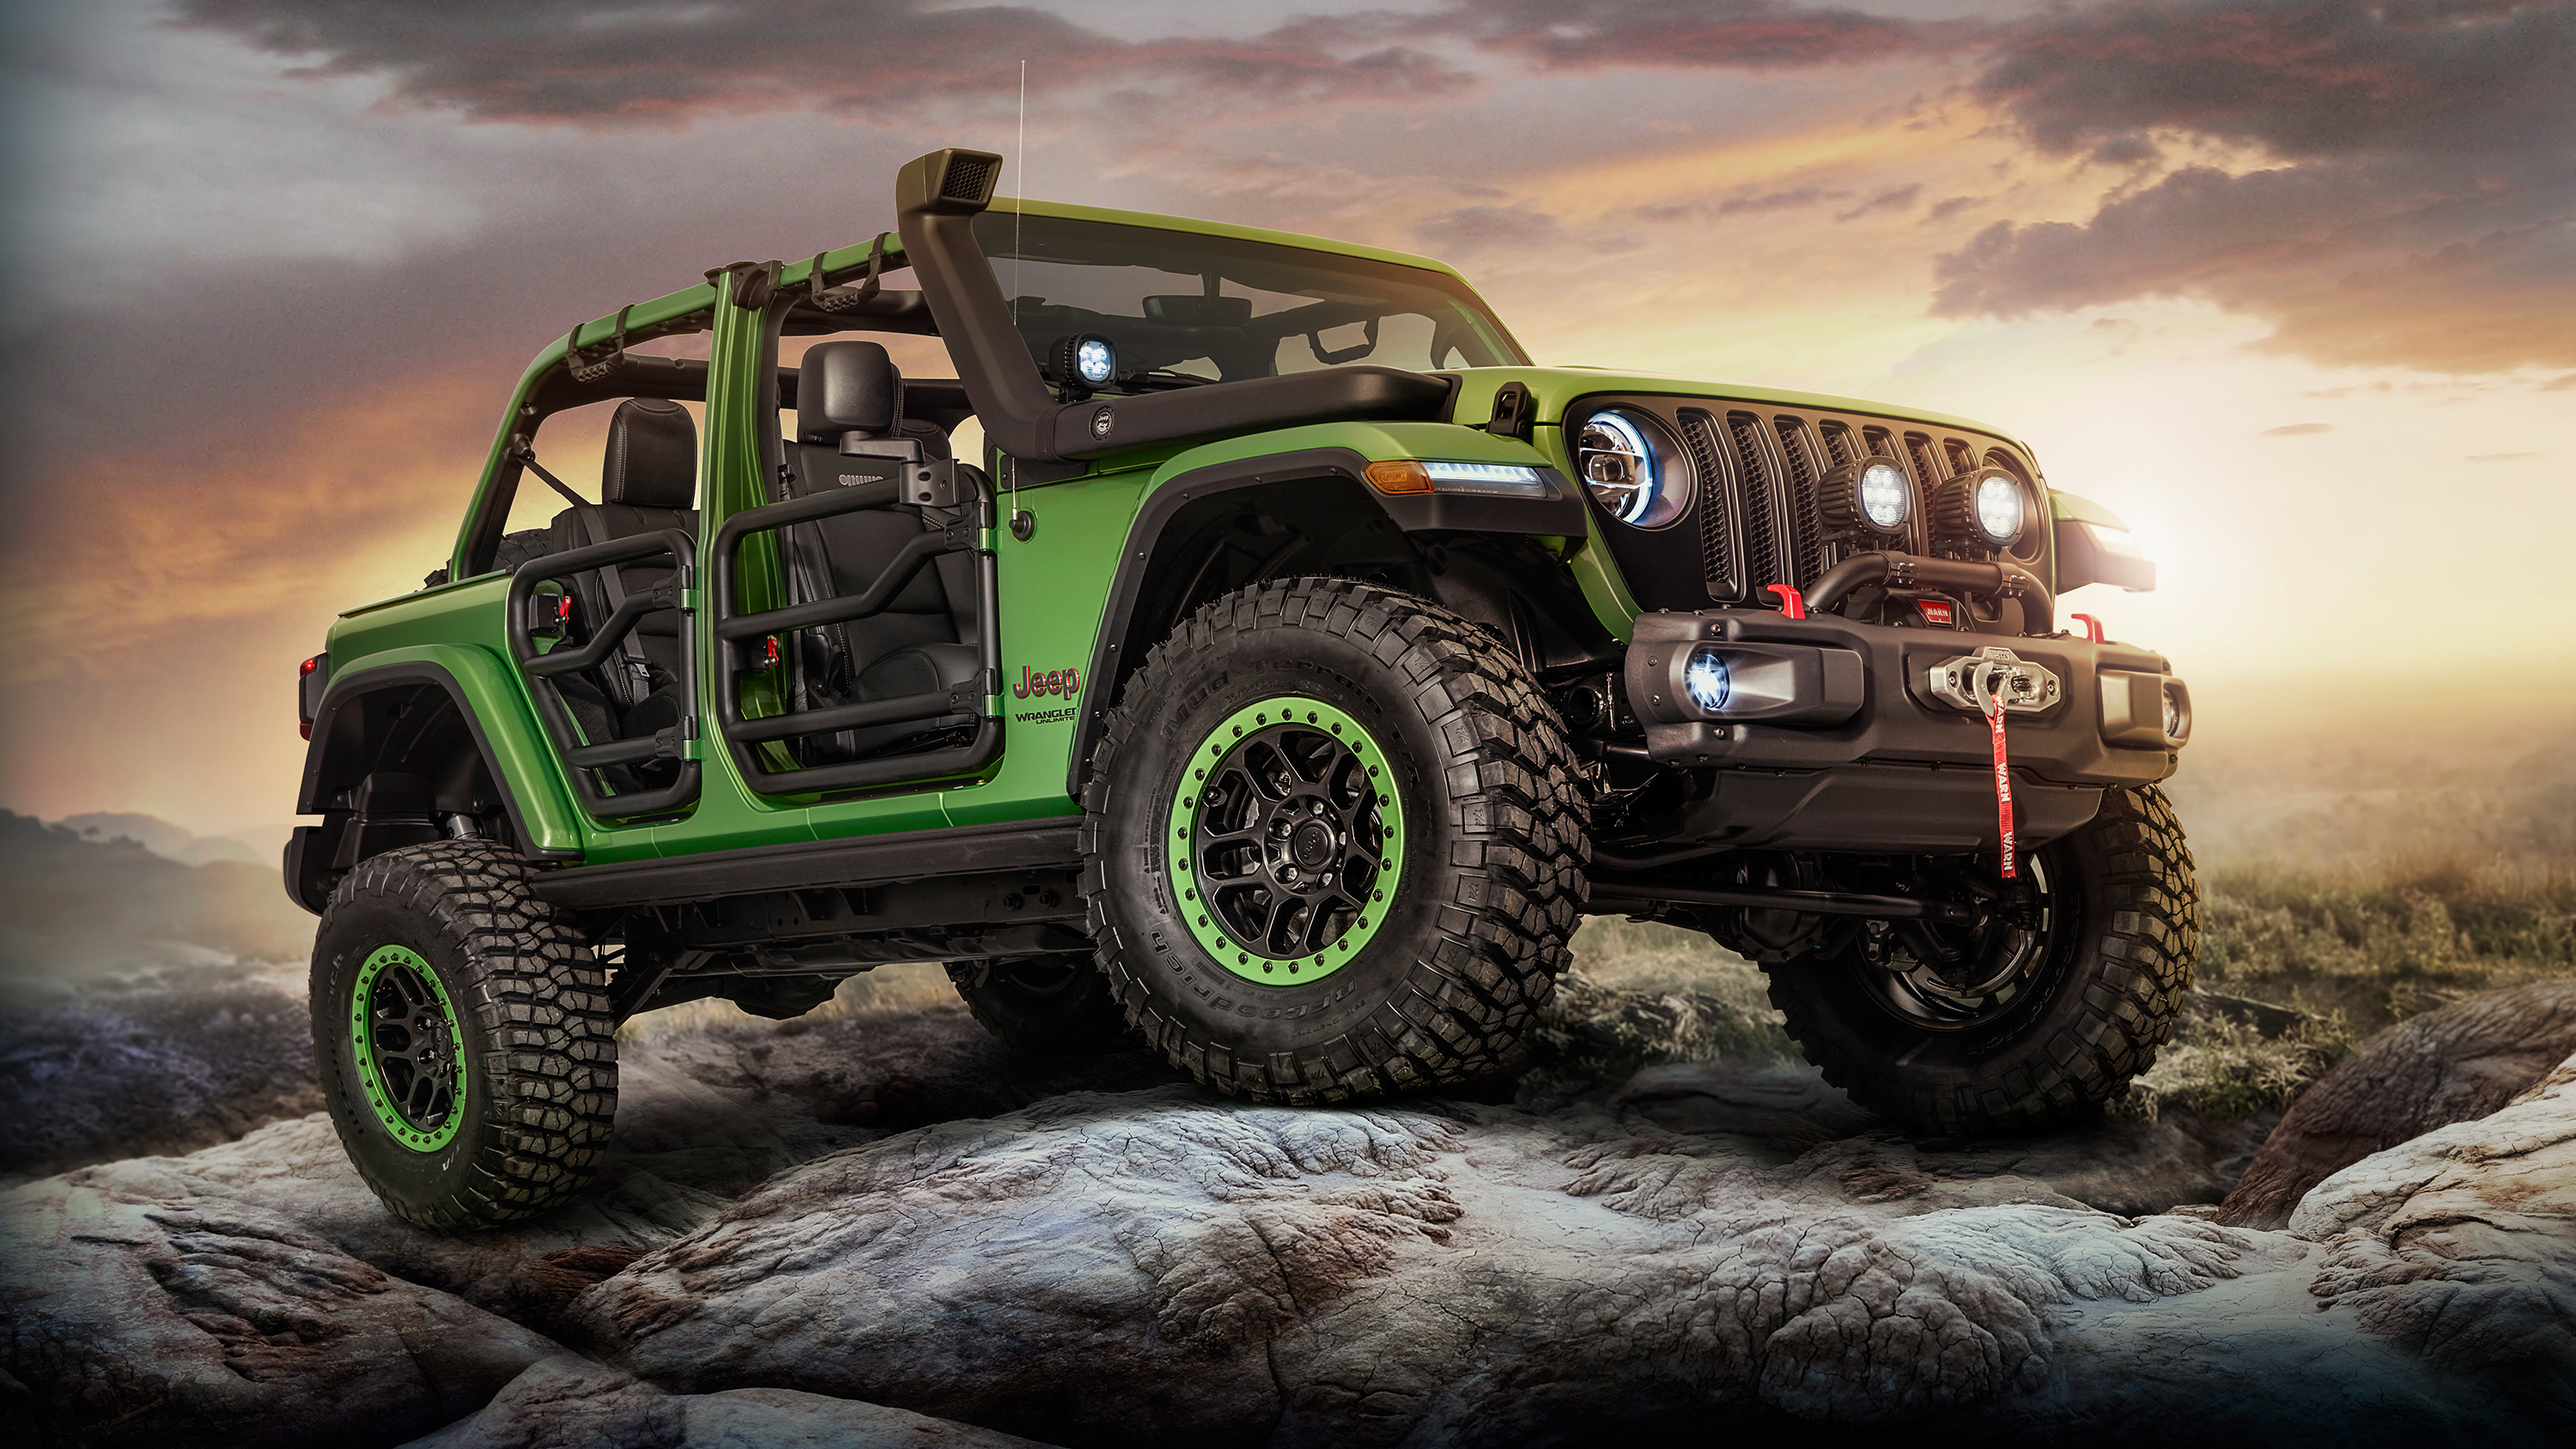 2018_jeep_wrangler_unlimited_rubicon_moparized-HD